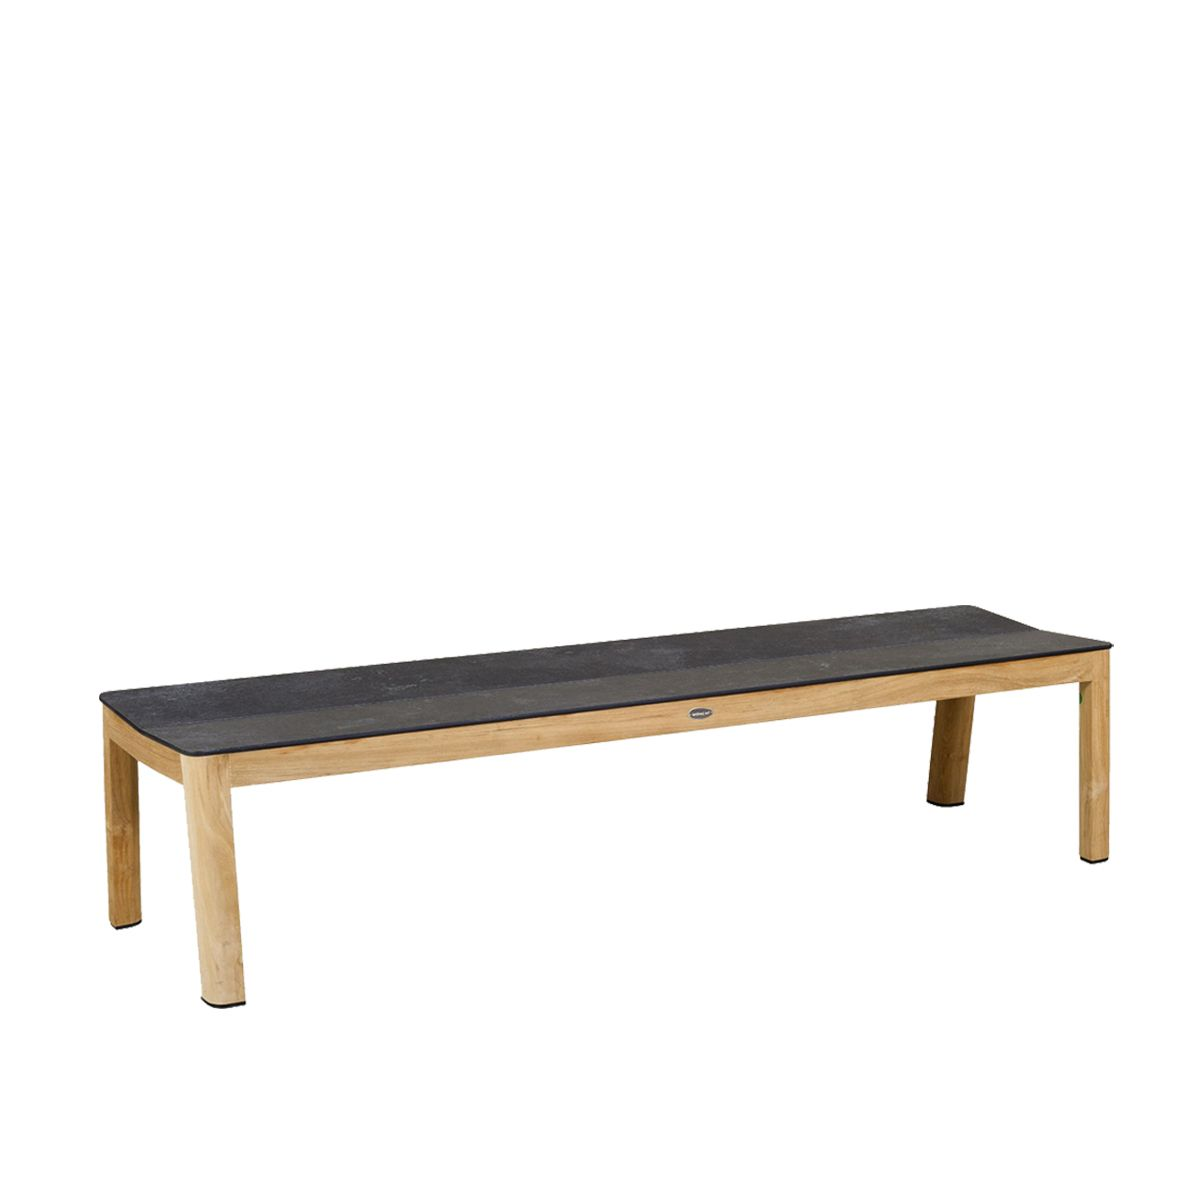 Banc de table large tekura for Table banc exterieur